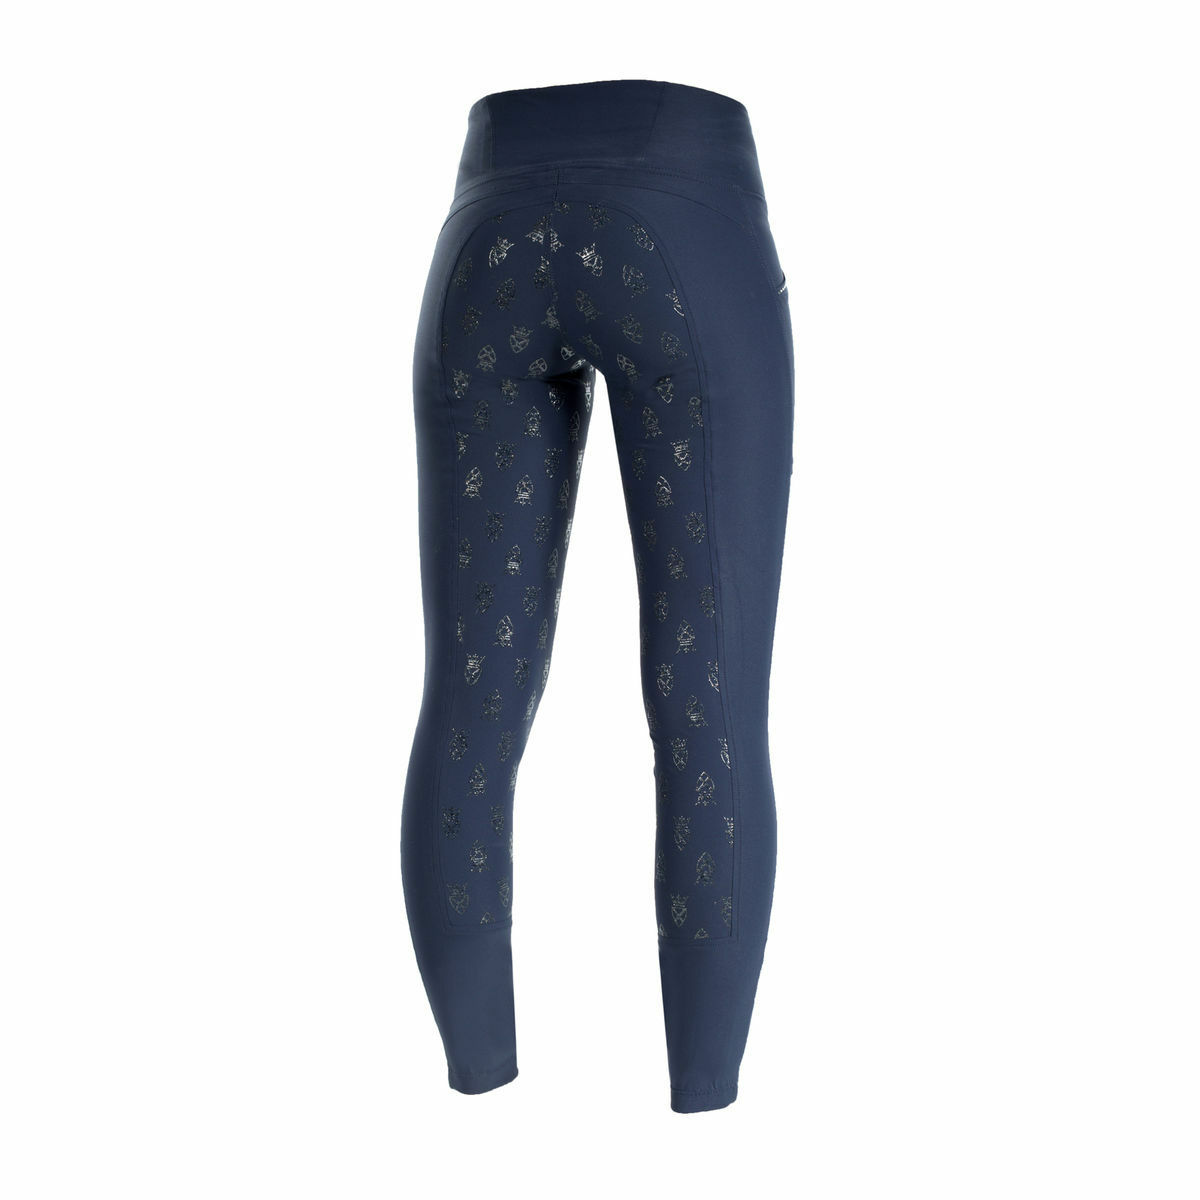 Ladies Horze Leah blueE  Silicone Grip Riding Tights English Hunt Seat Breeches  high-quality merchandise and convenient, honest service